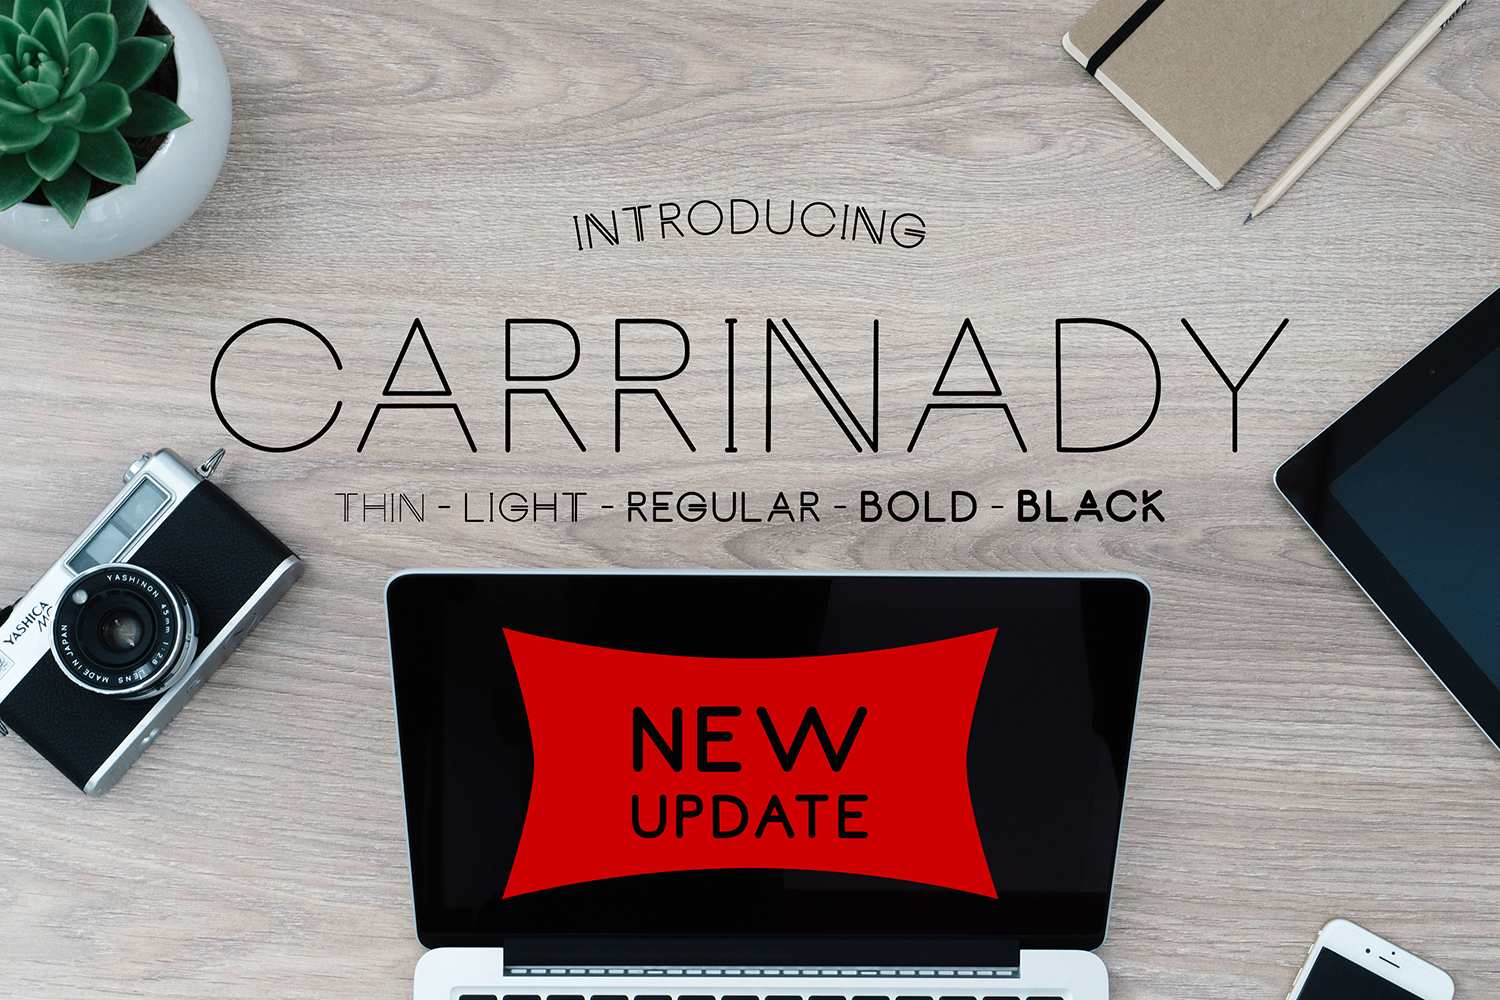 Carrinady Family - NEW UPDATE example image 1